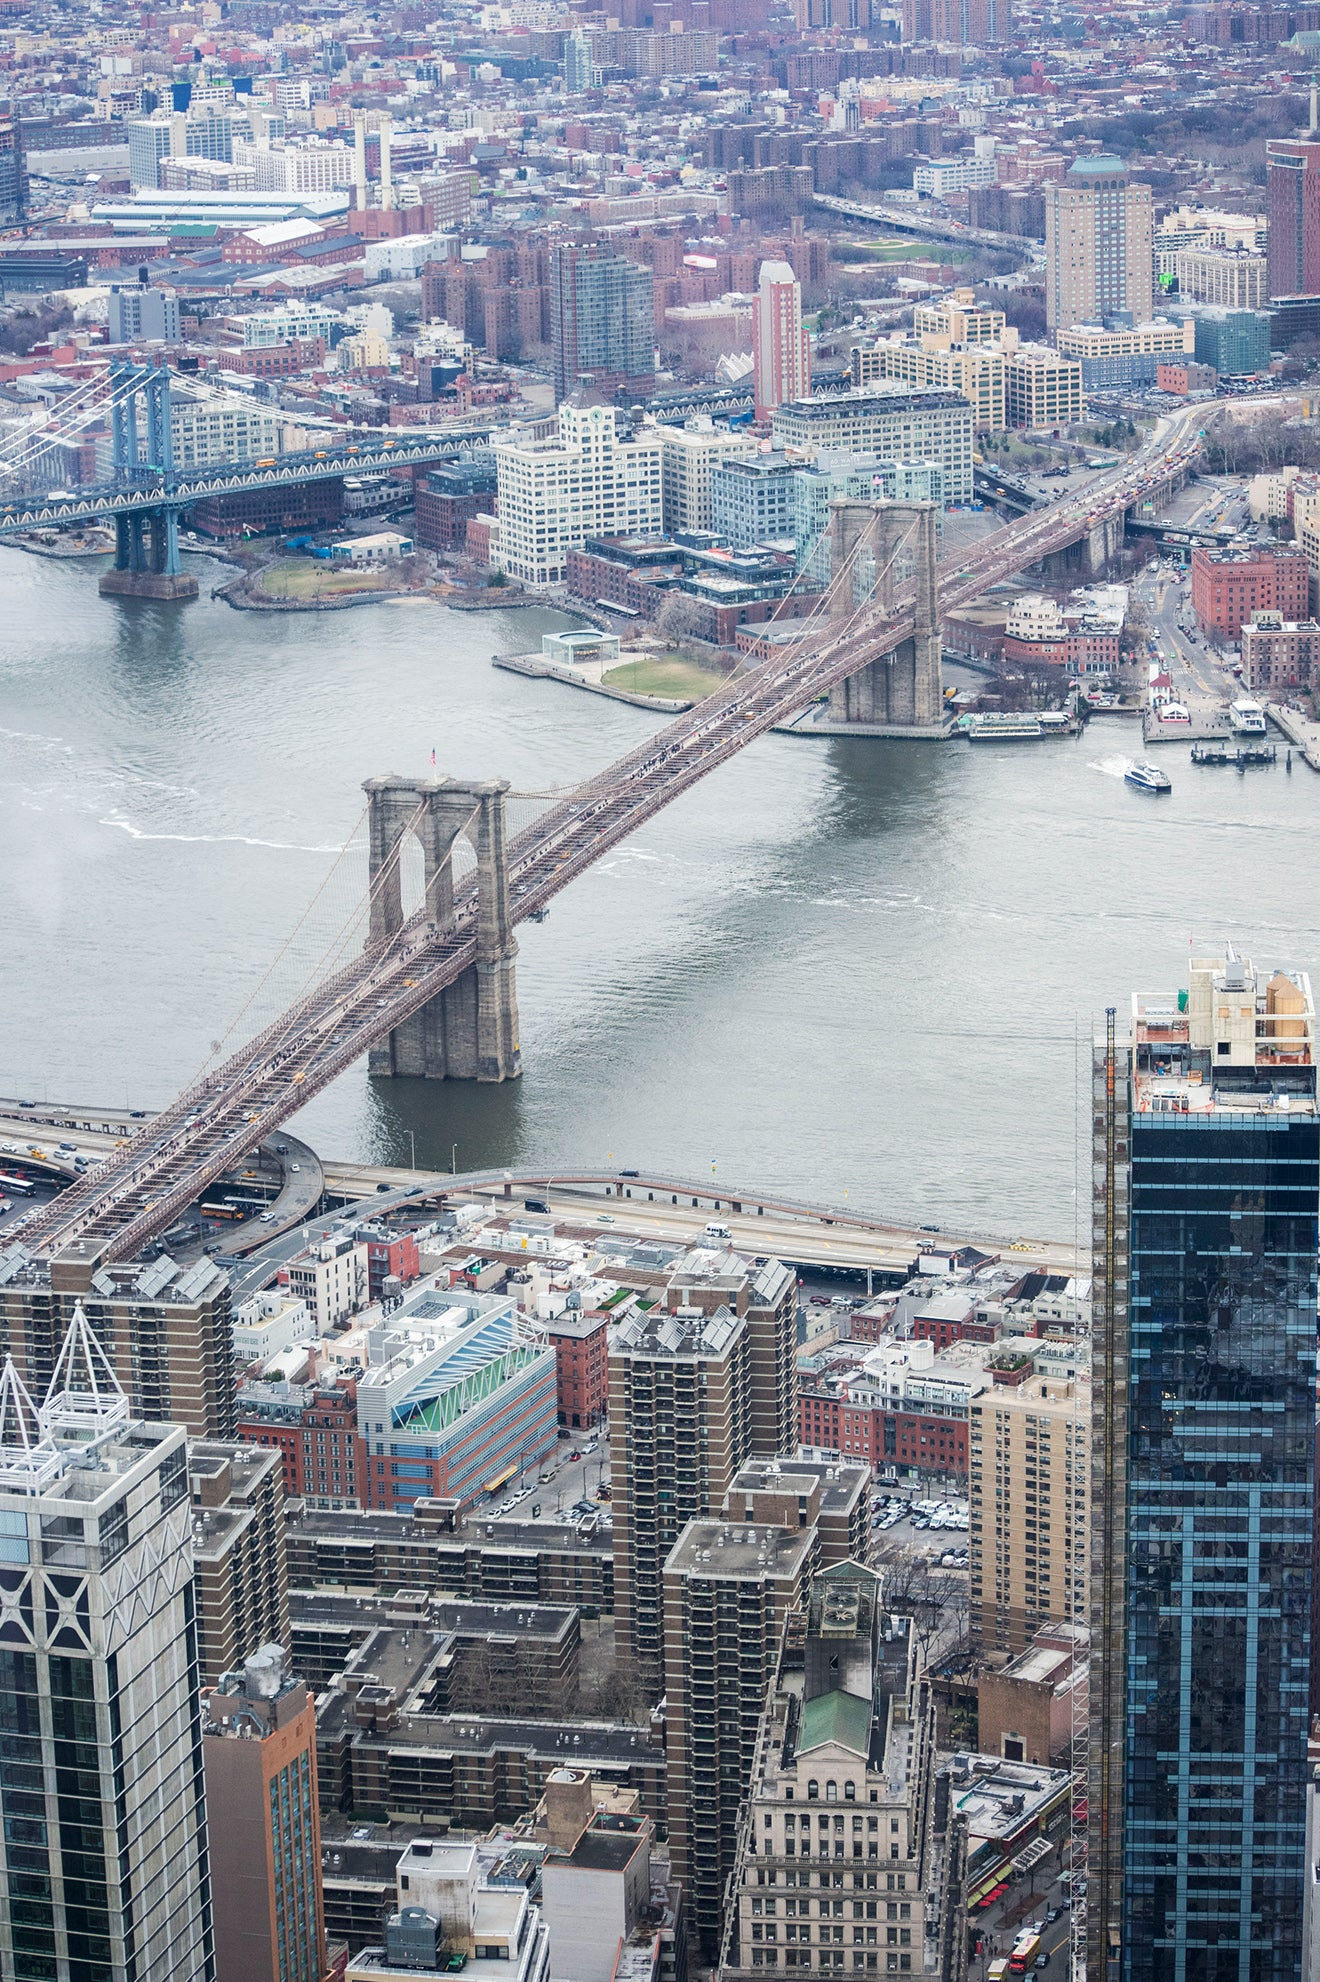 Brooklyn Bridge from the top of the World Trade Center